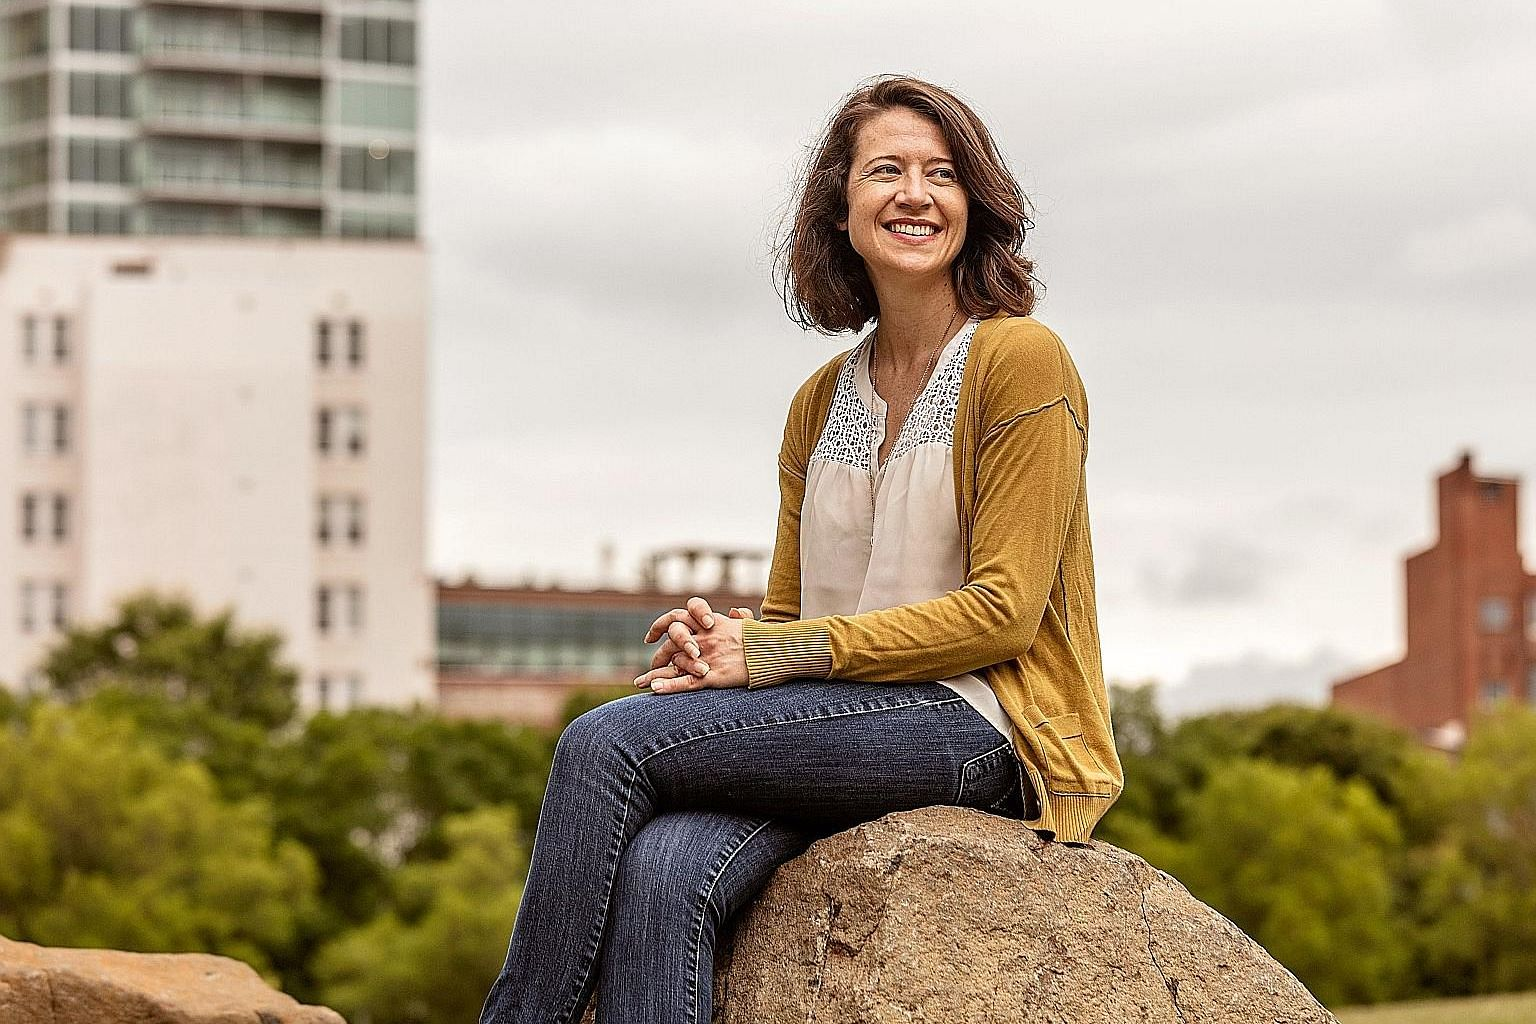 People who loan money to others tend to be over-optimistic when it comes to whether they will get their money back, says Ms Mariel Beasley (above), co-founder of the Common Cents Lab, a financial behaviour research lab.